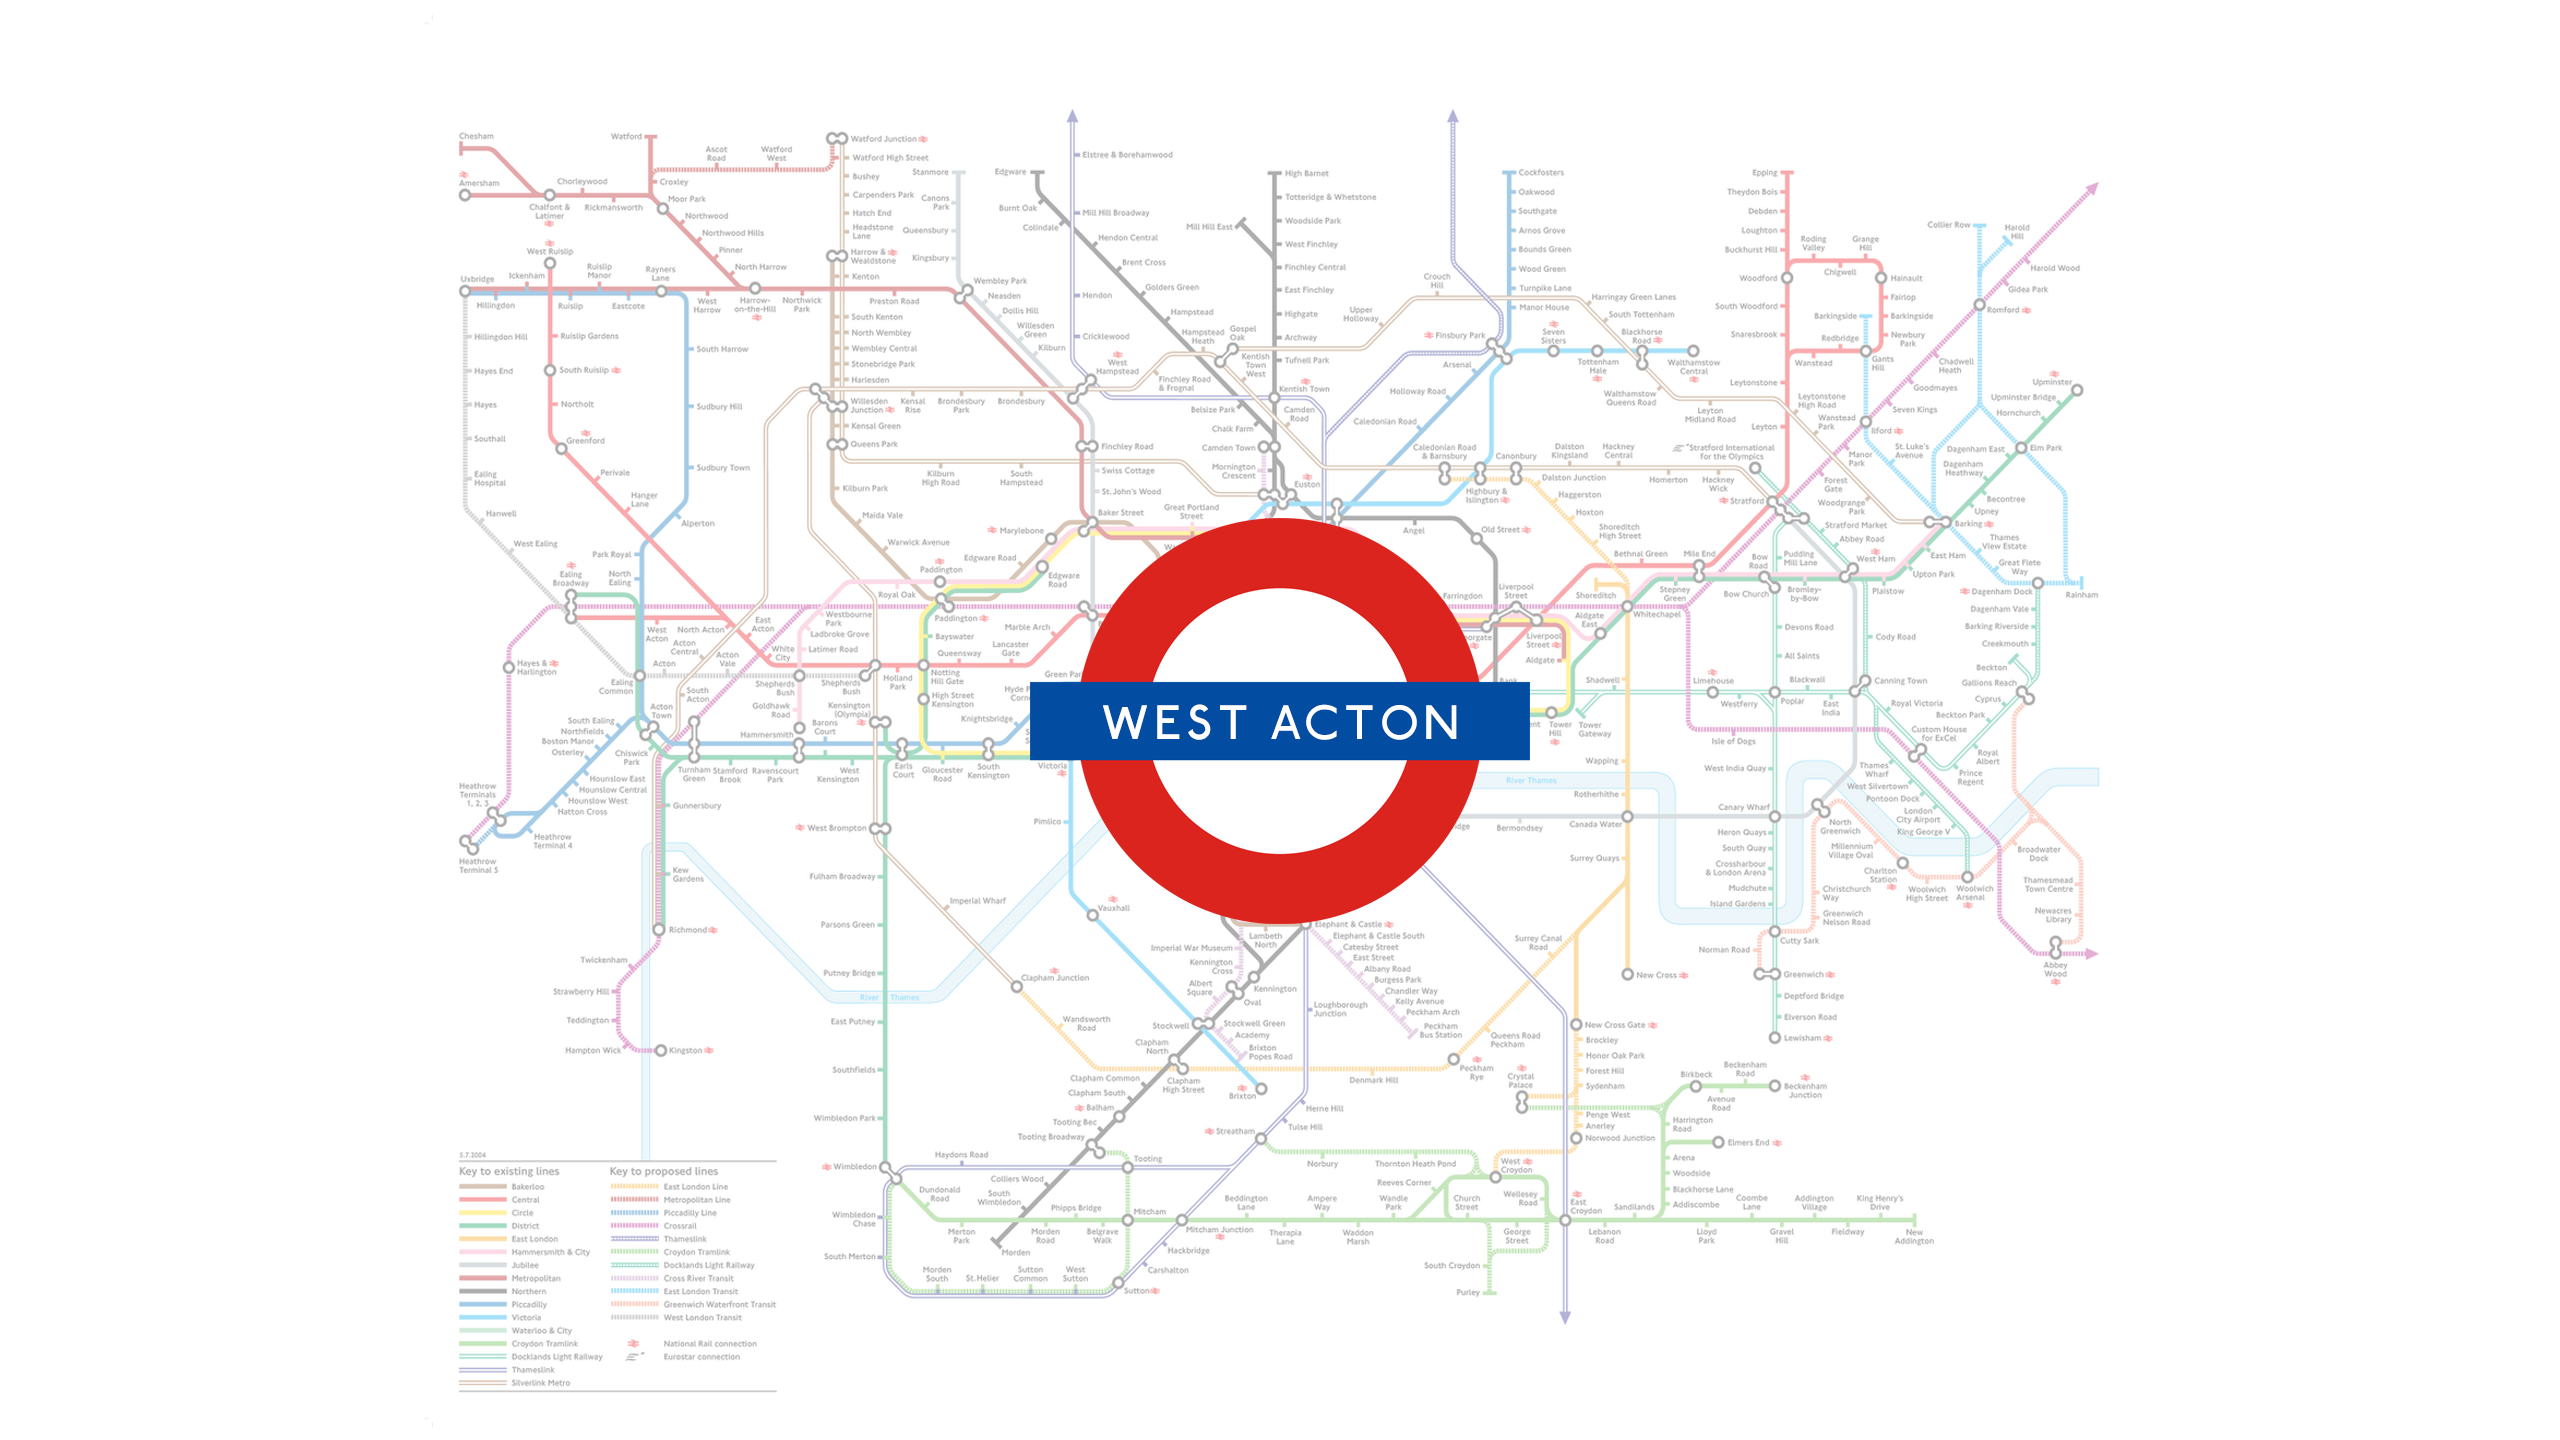 West Acton (Map)